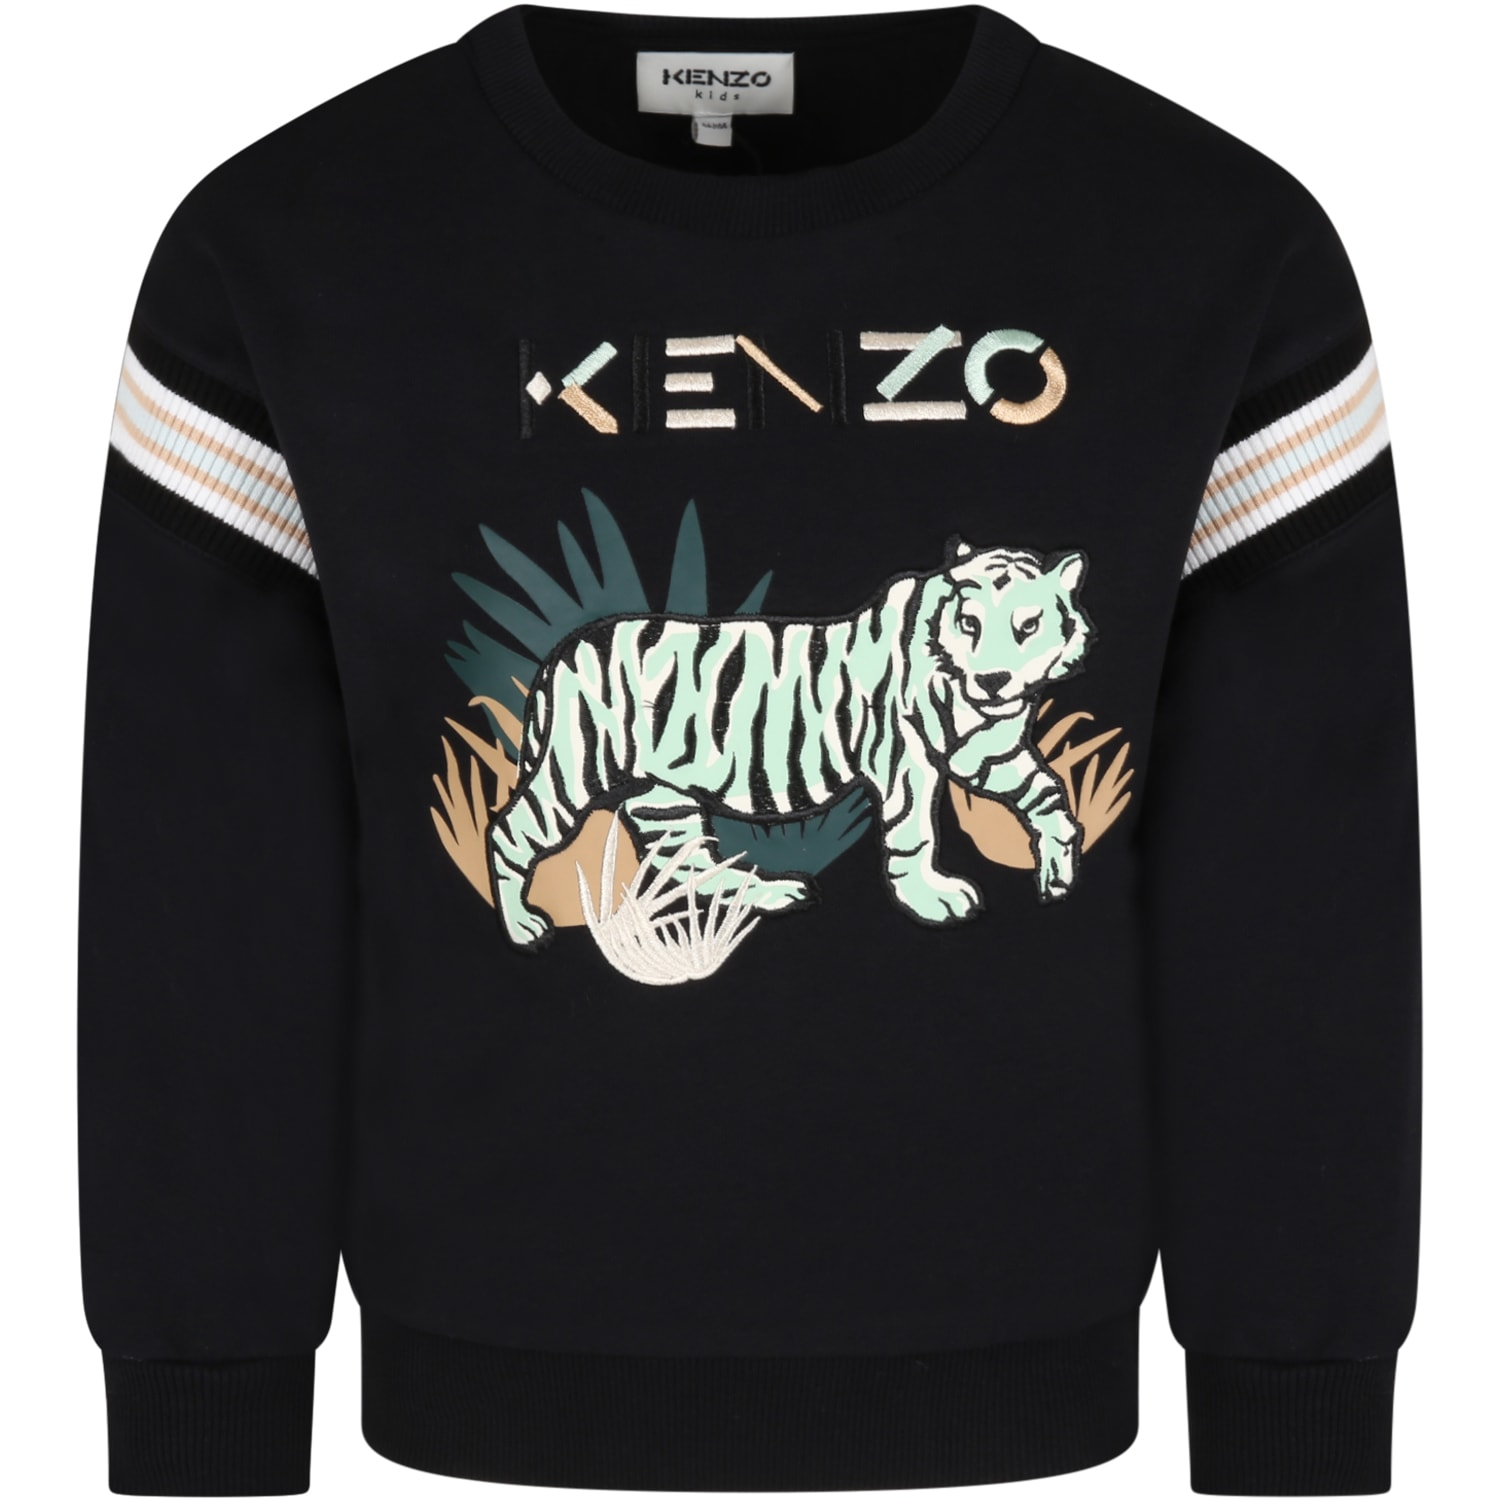 Black Sweatshirt For Kids With Logo And Tiger